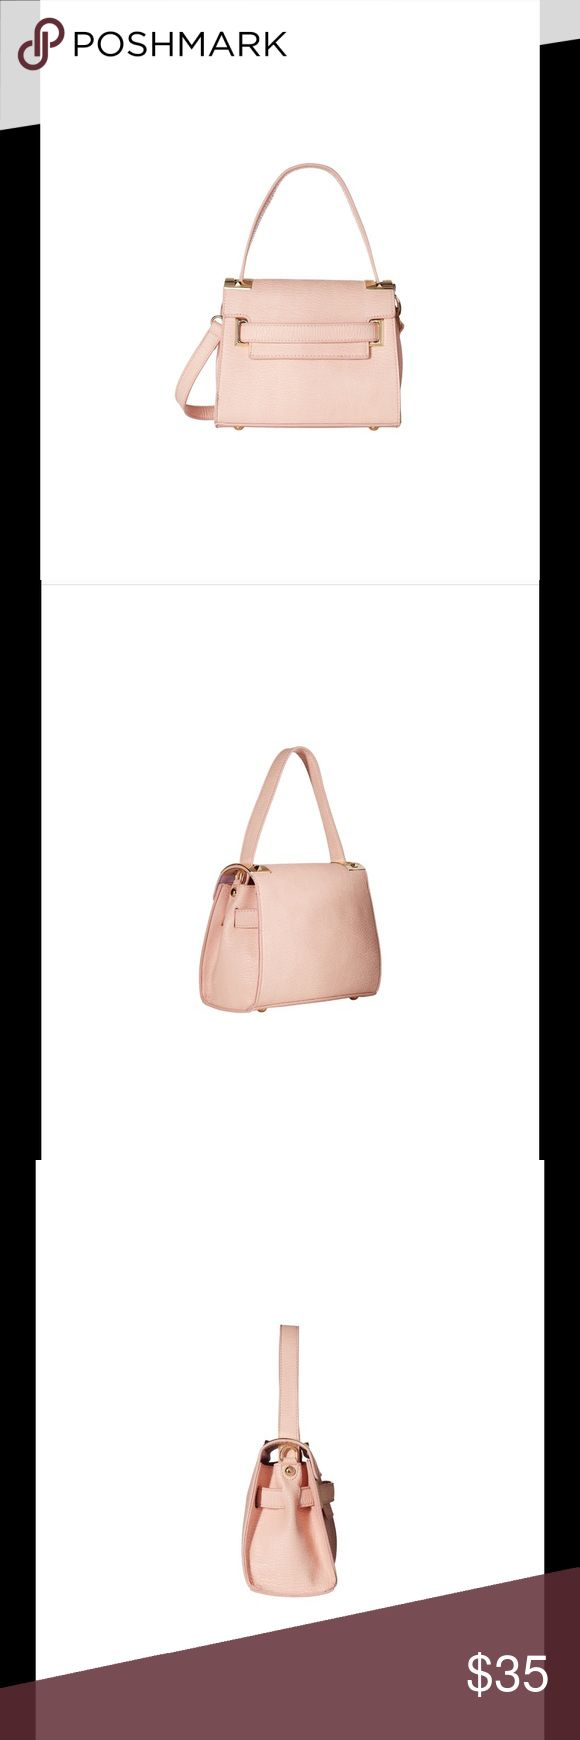 Gabriella Rocha Alaia Shoulder Purse in Blush See additional listing for more information.                Seller Code: 022520170001999 Gabriella Rocha Bags Mini Bags